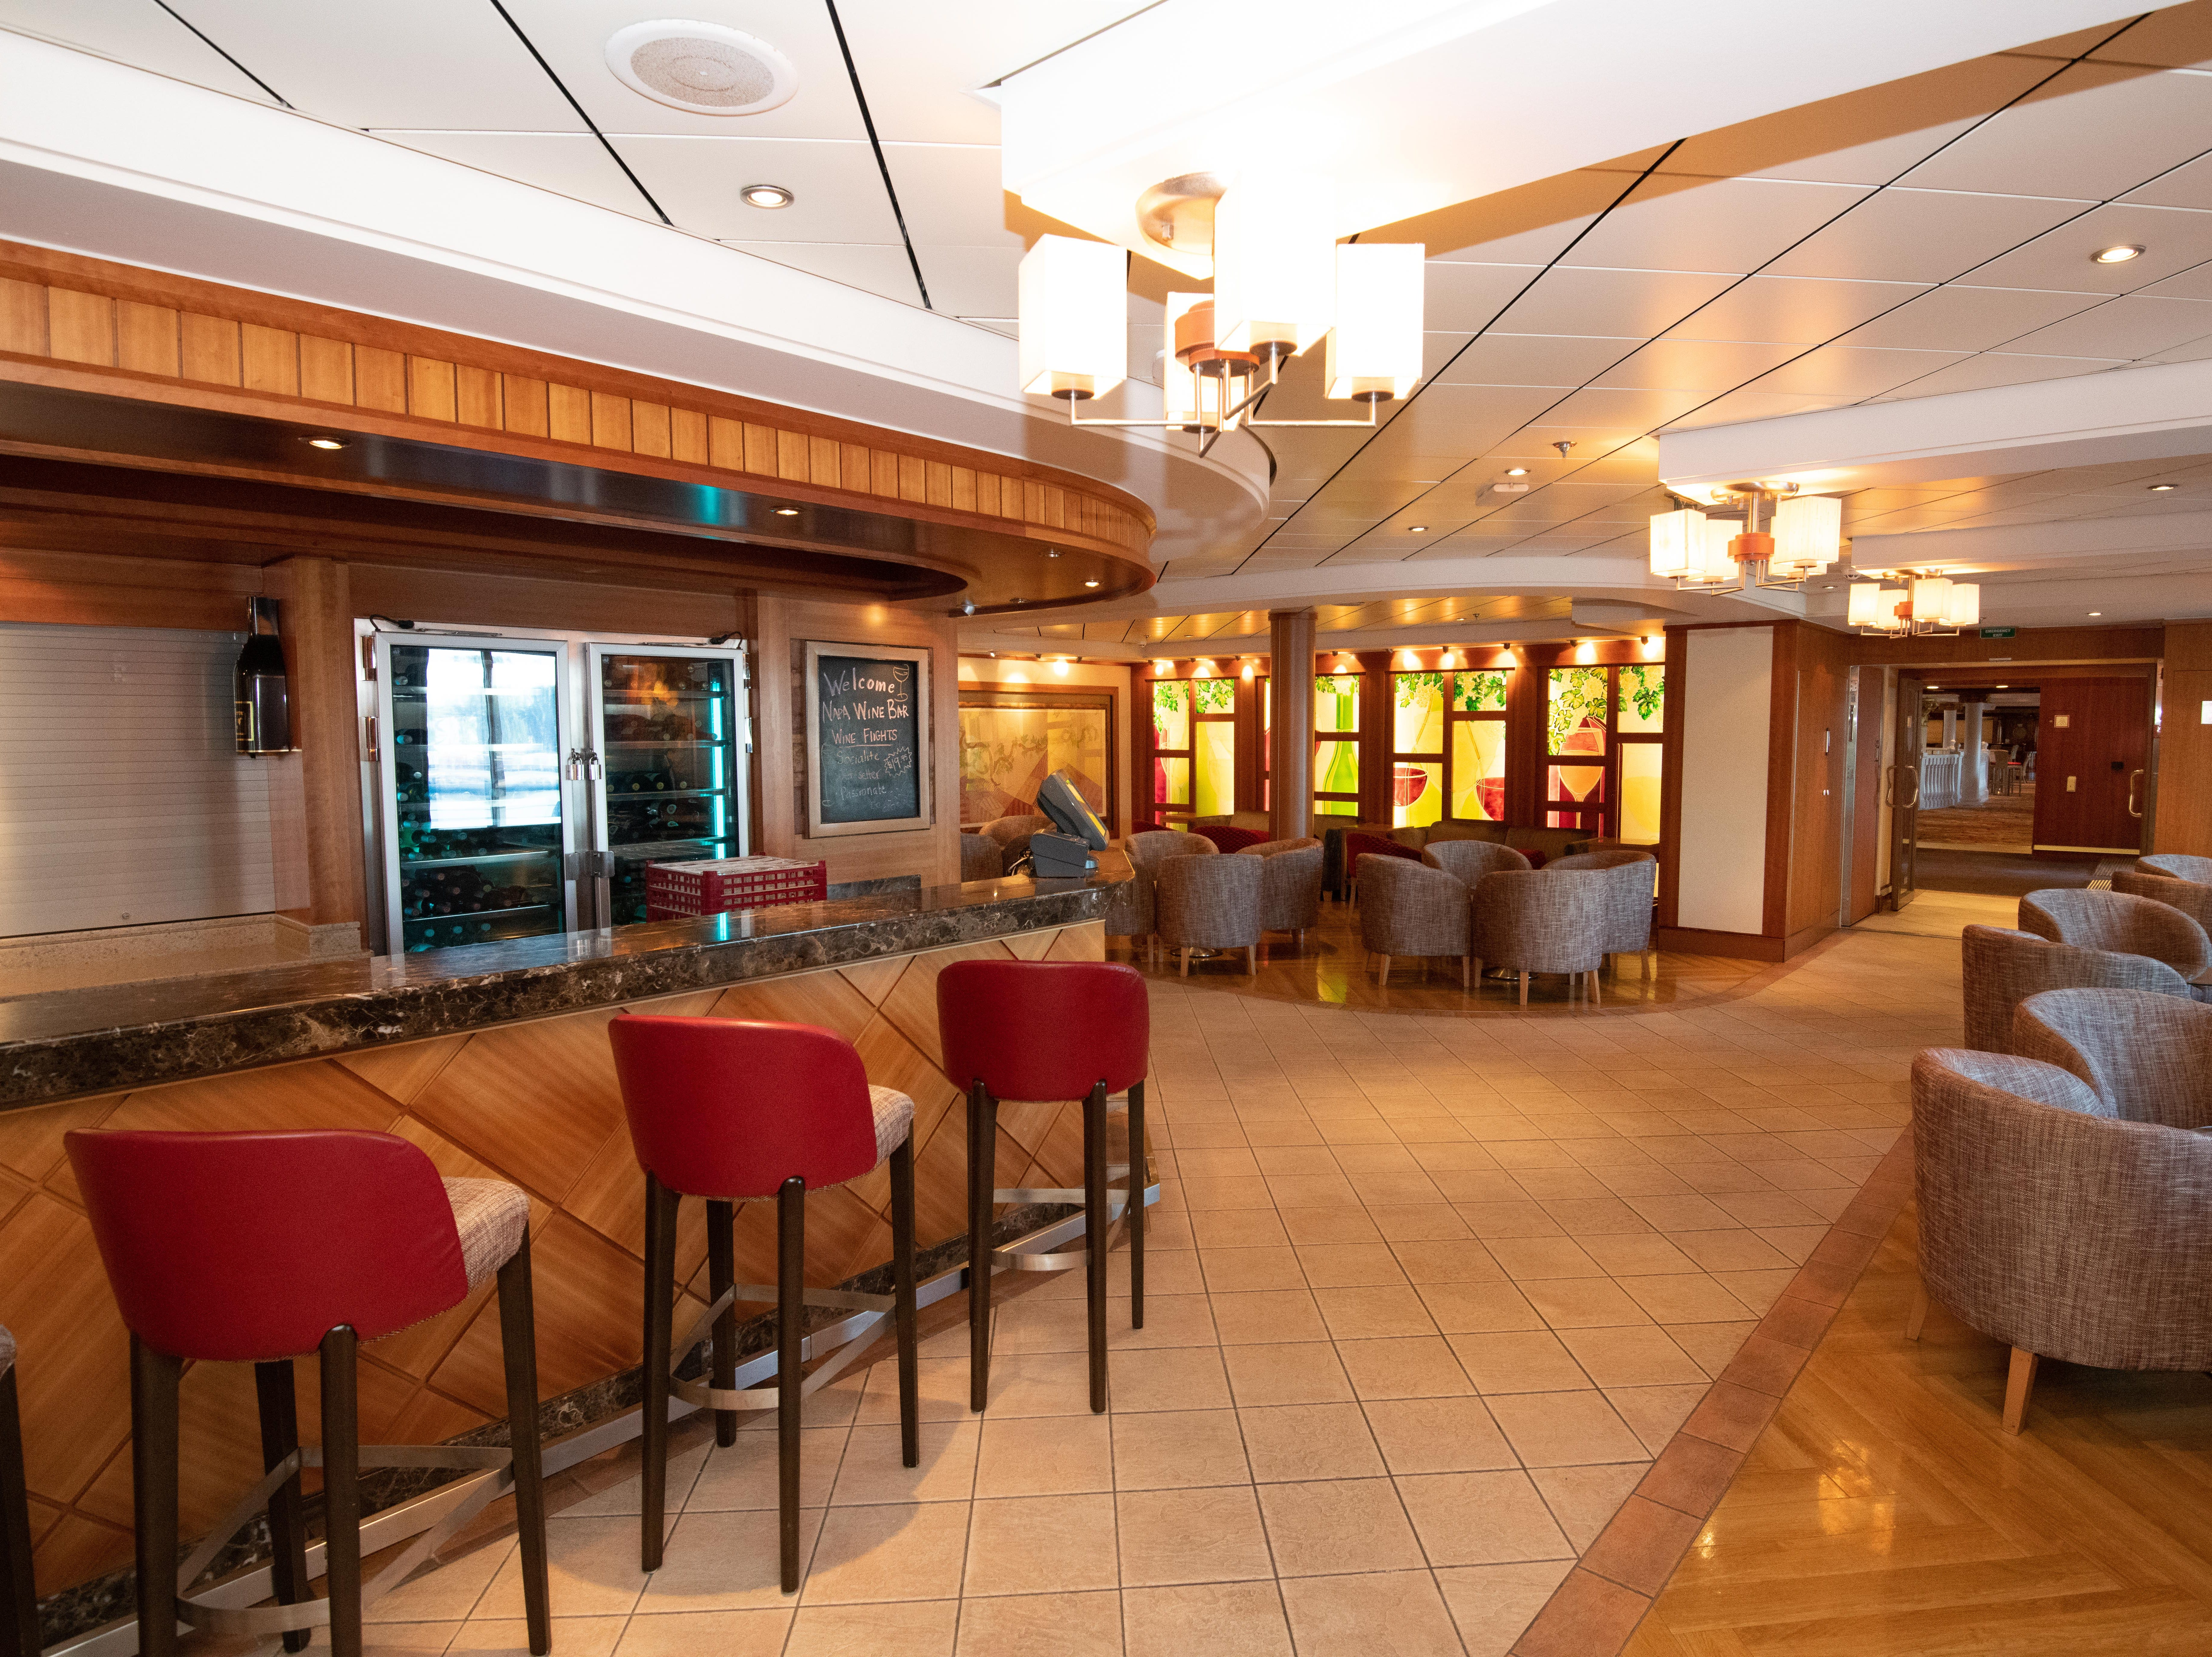 Located on Deck 6, the Napa Wine Bar is a wine-focused bar.